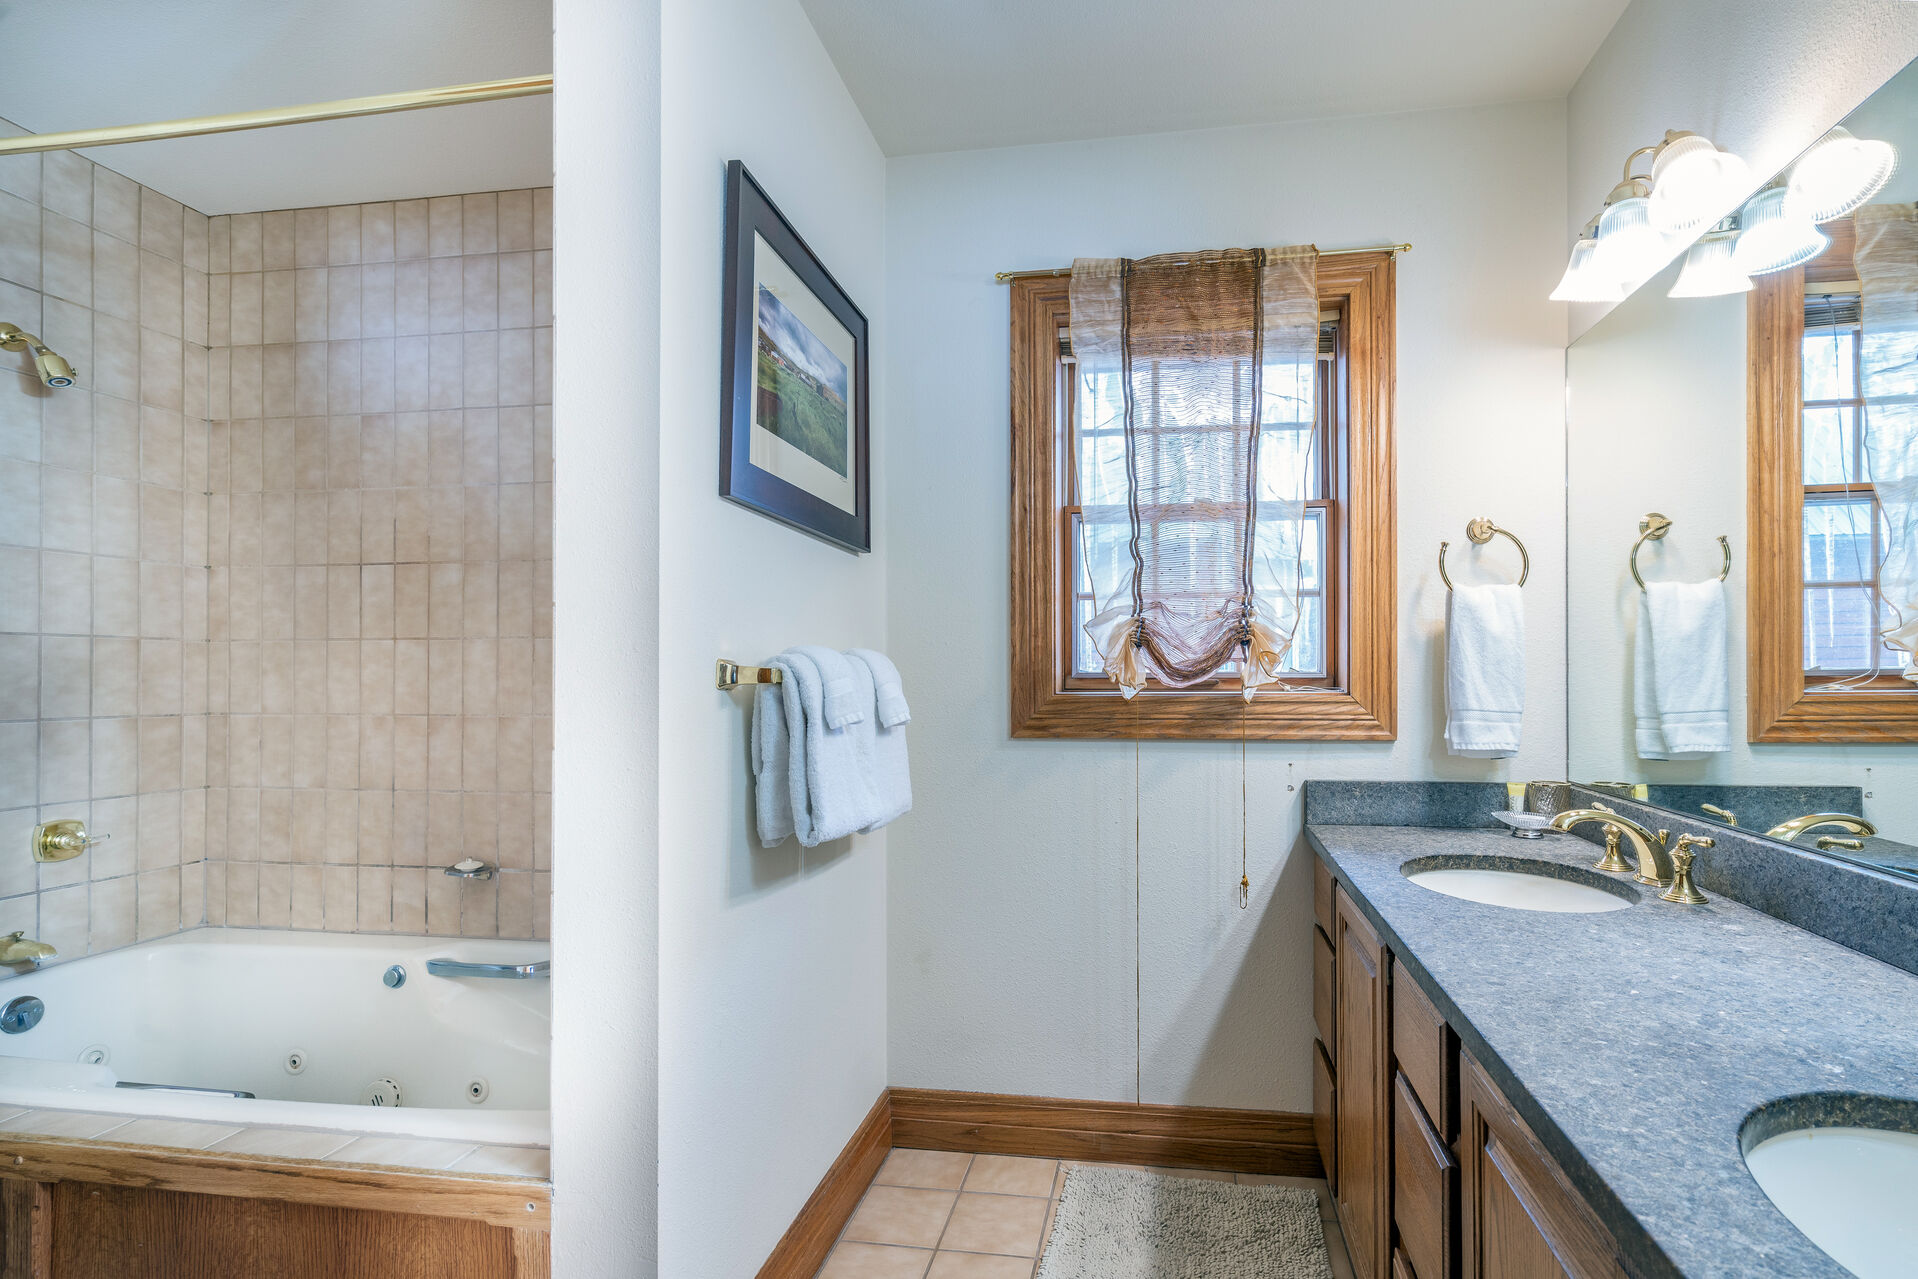 Bathroom with two sinks and a tub